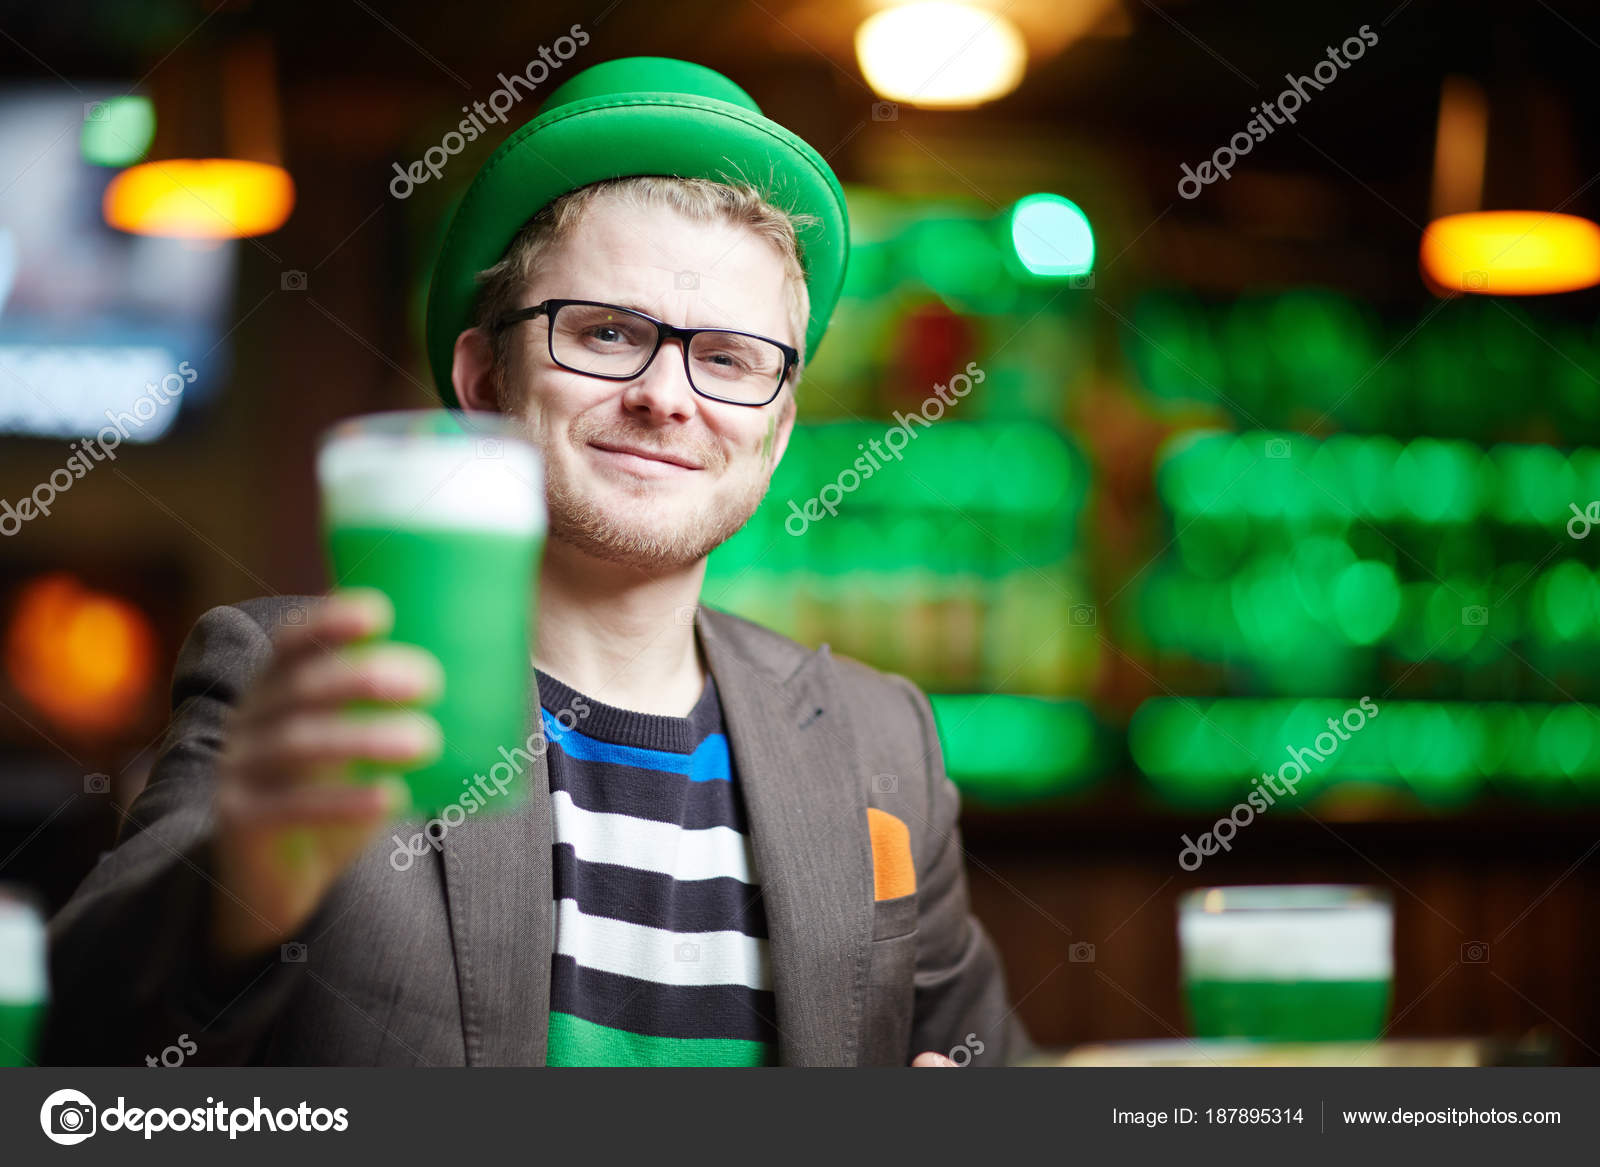 d6a89d719a7 Young Man Green Hat Cheering Glass Beer Modern Pub — Stock Photo ...